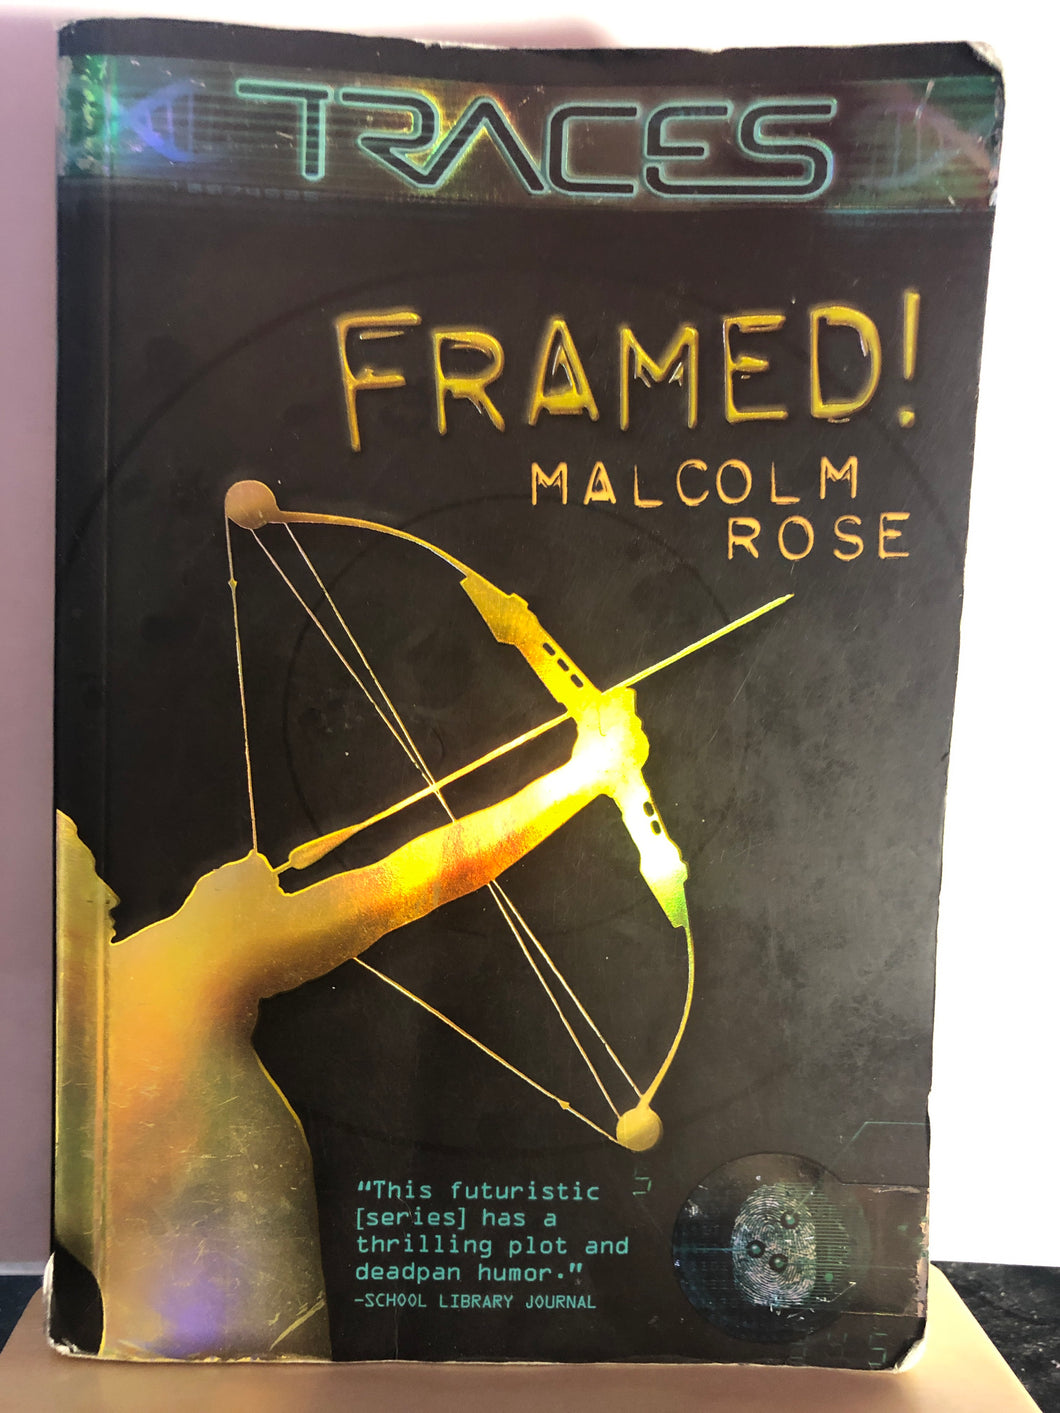 Framed!   by Malcolm Rose  (Traces #1)